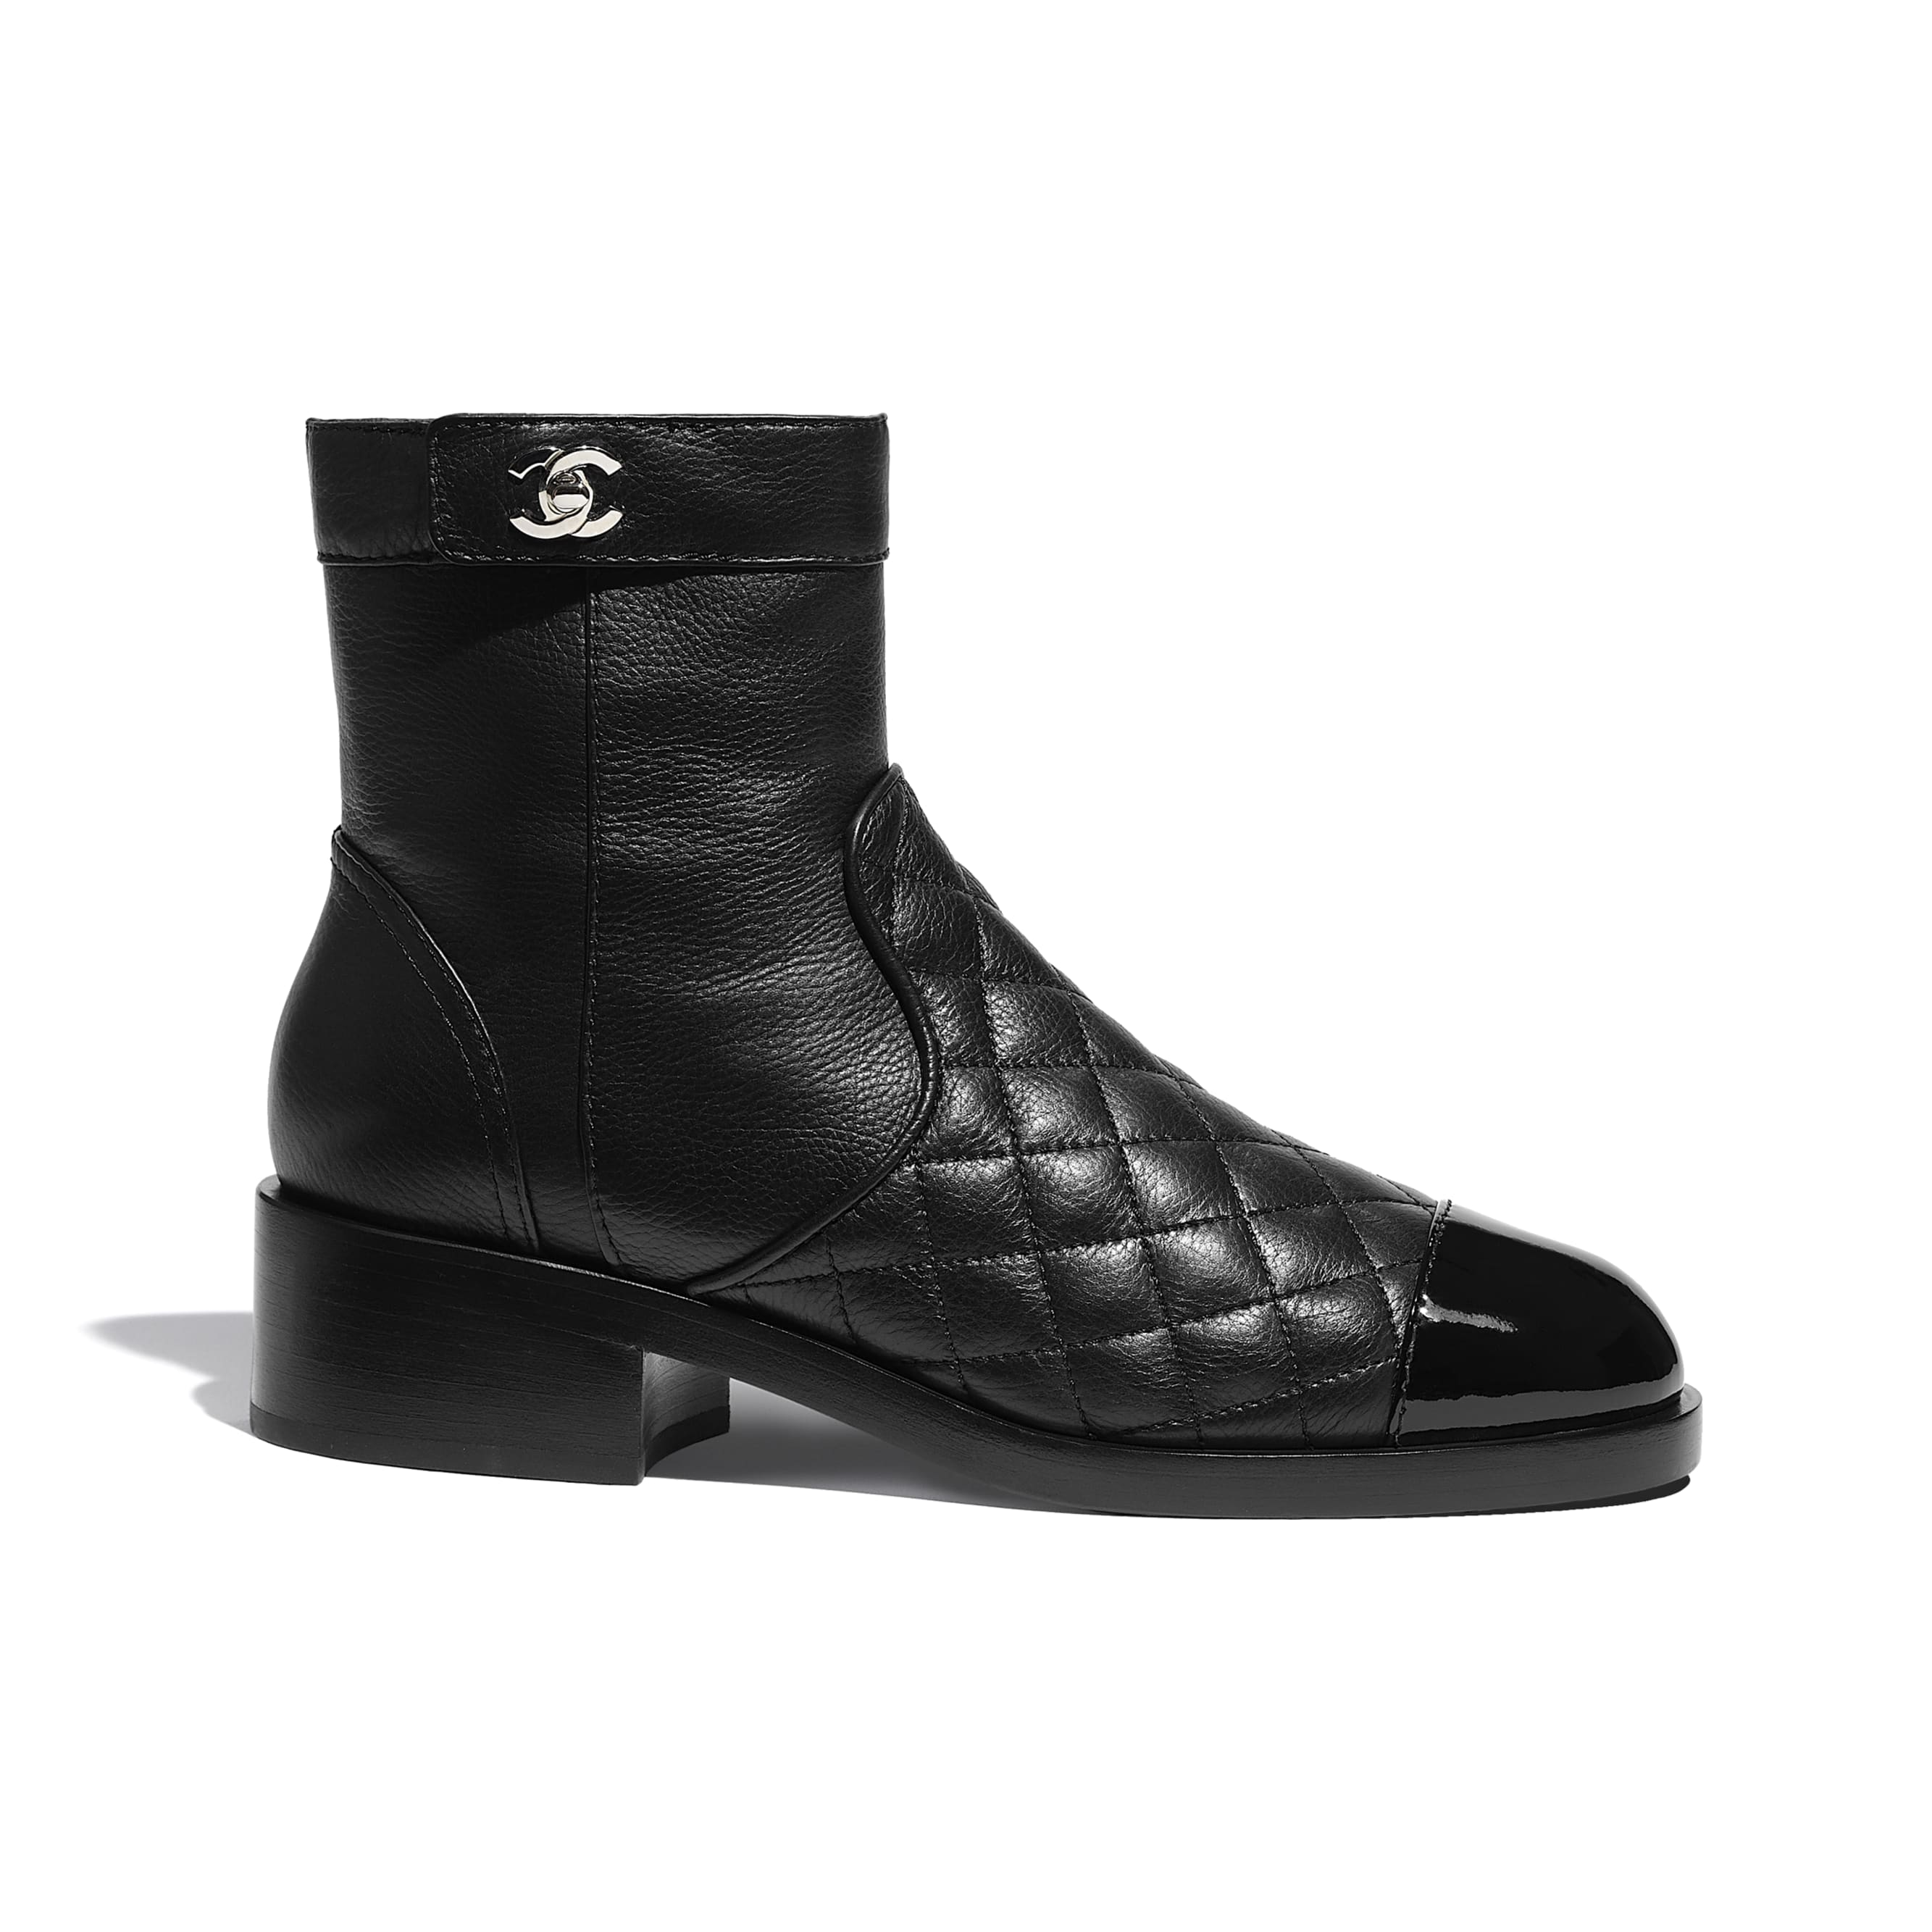 Ankle Boots - Black - Calfskin & Patent Calfskin - CHANEL - Default view - see standard sized version